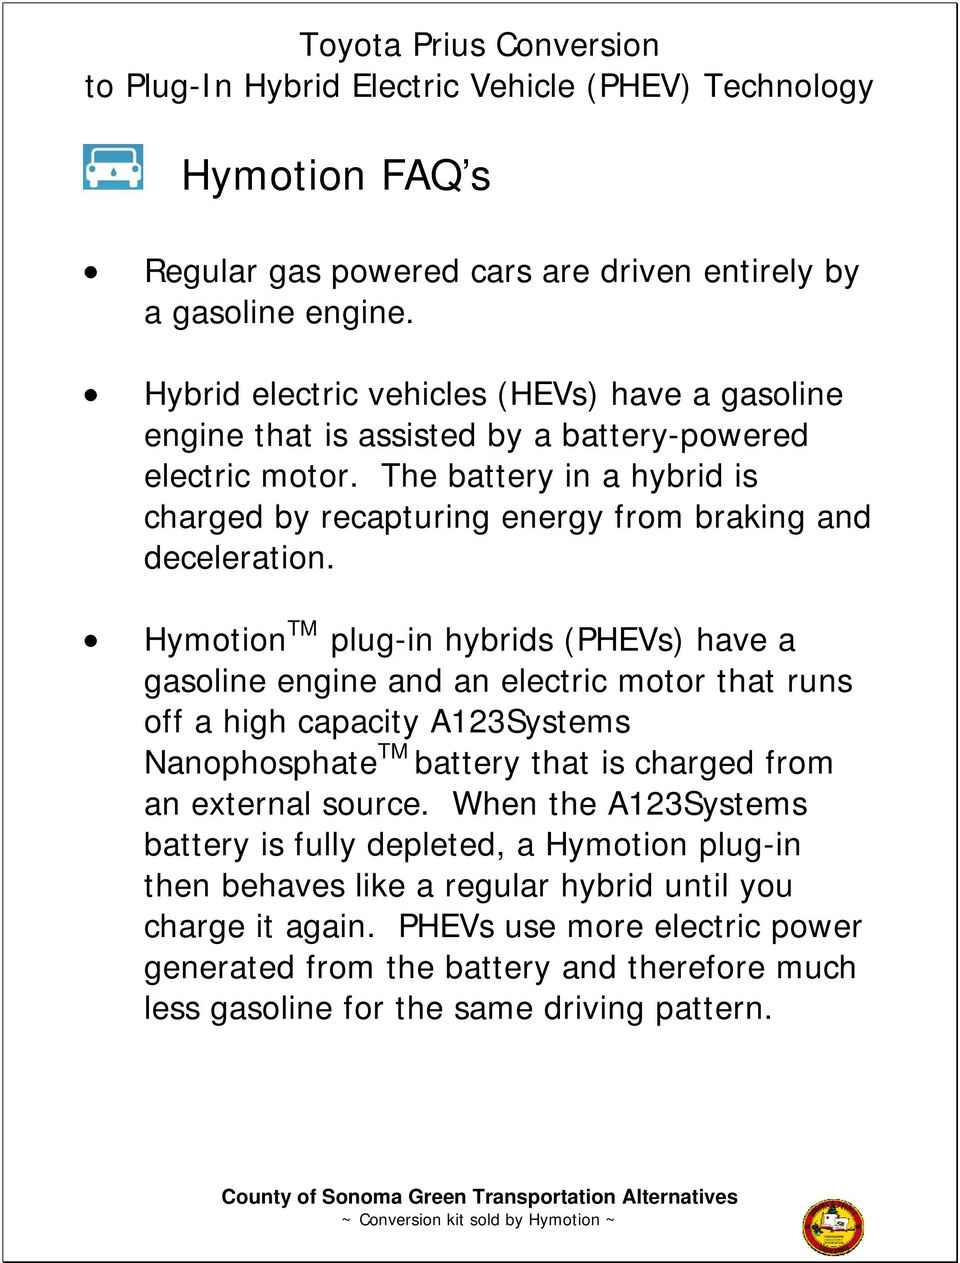 The battery in a hybrid is charged by recapturing energy from braking and deceleration.